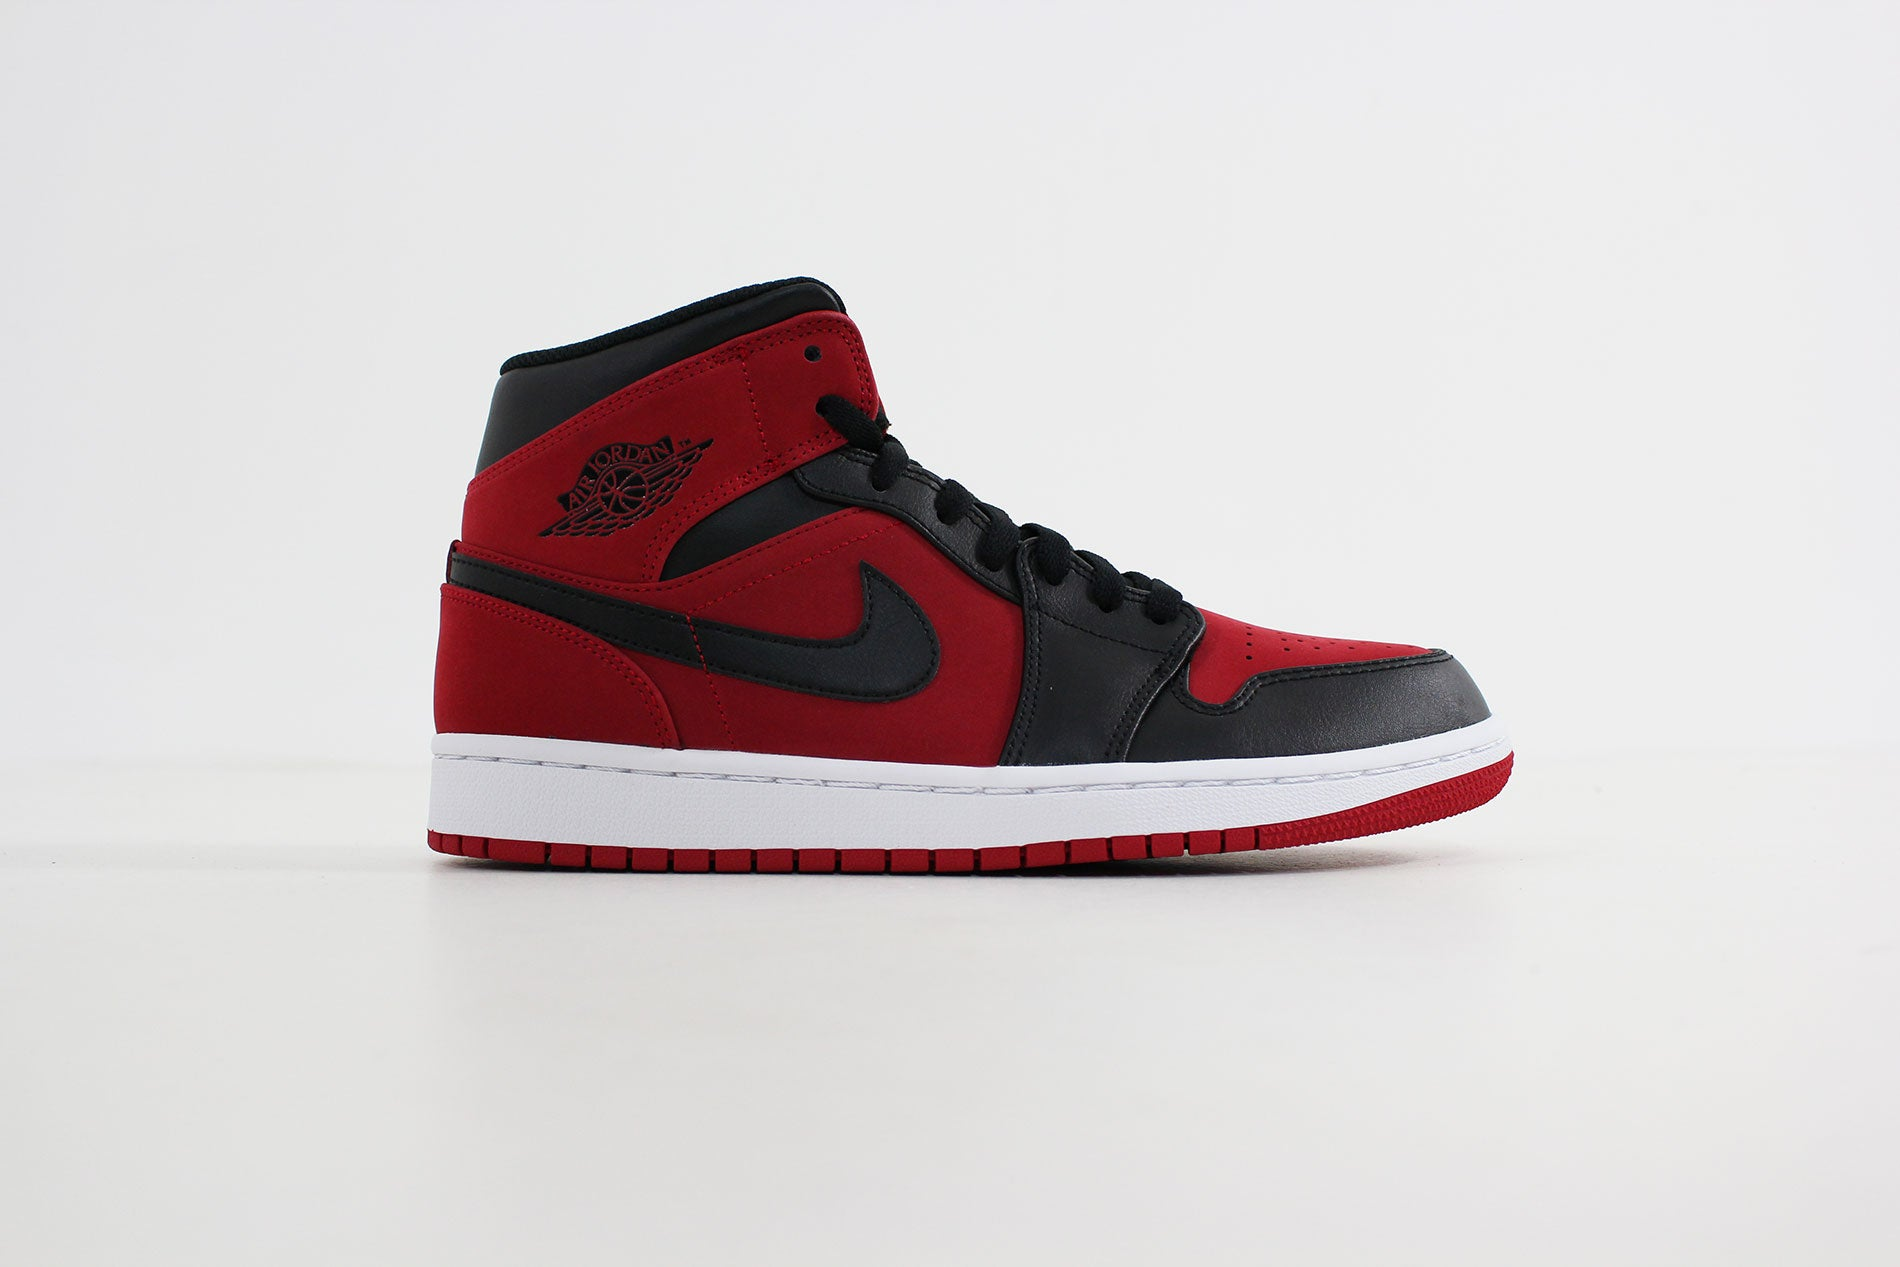 Nike - Air Jordan 1 MID (Gym Red/ Black-White) 554724-610